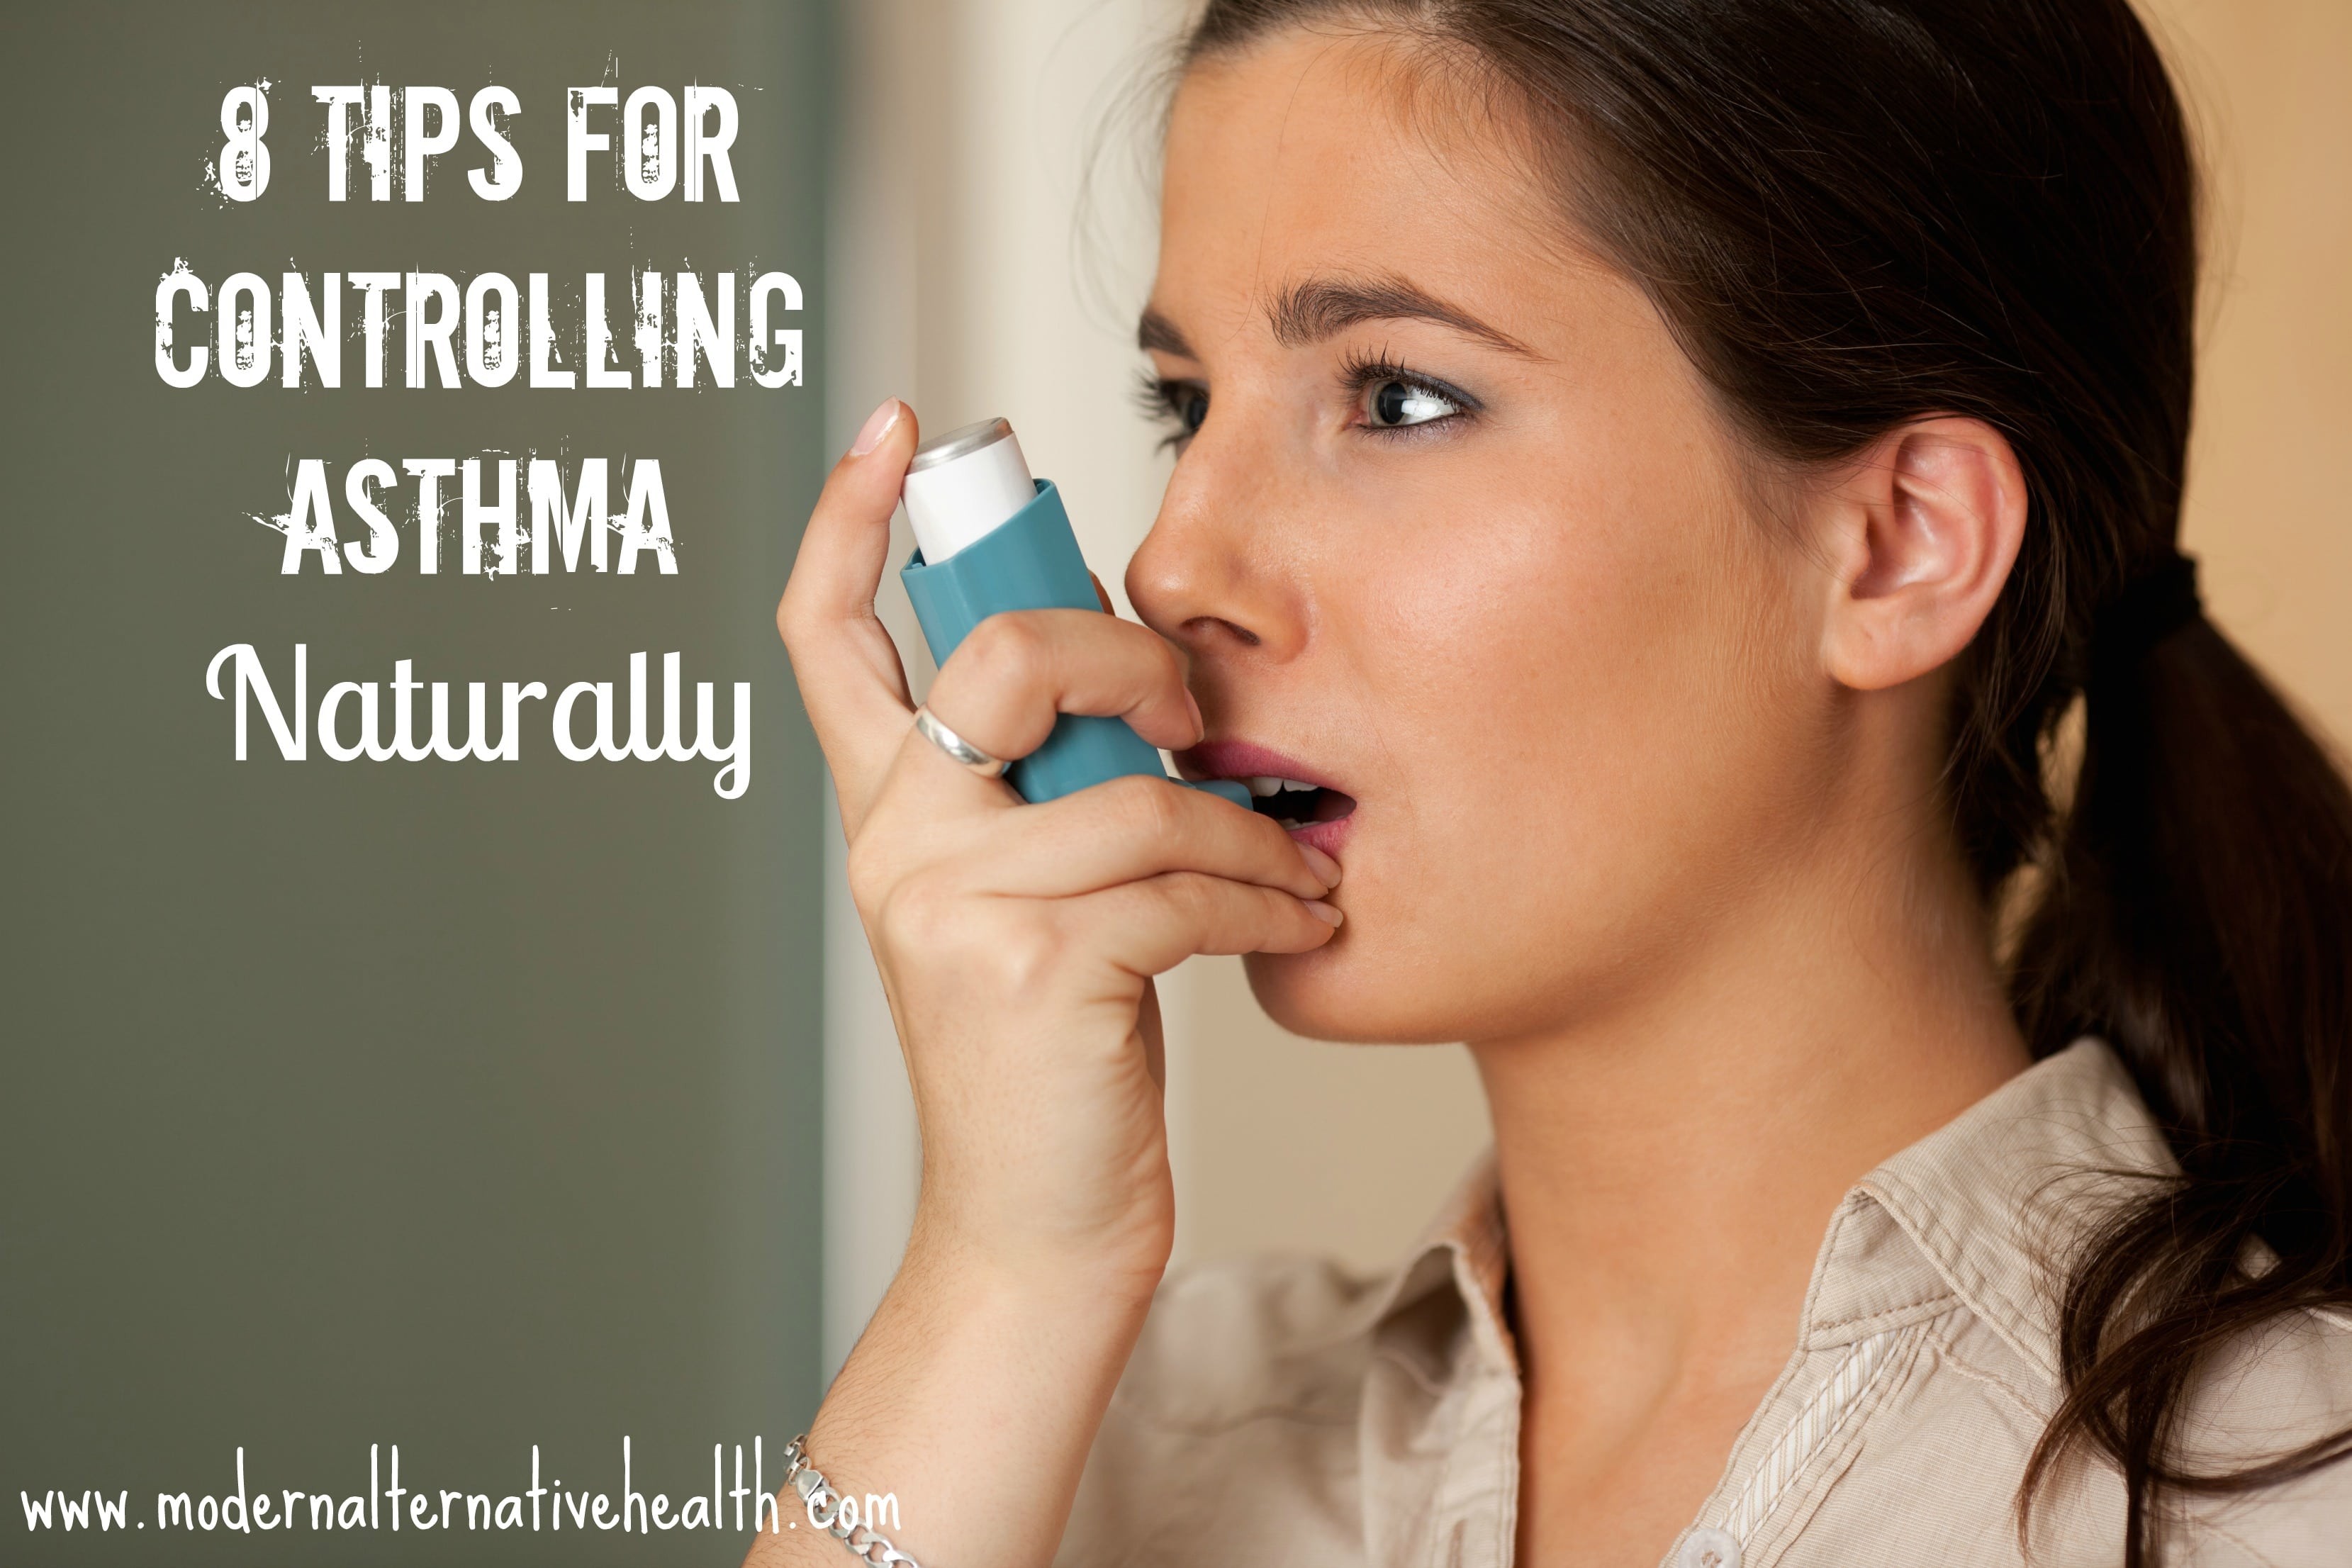 8 Tips for Controlling Asthma Naturally